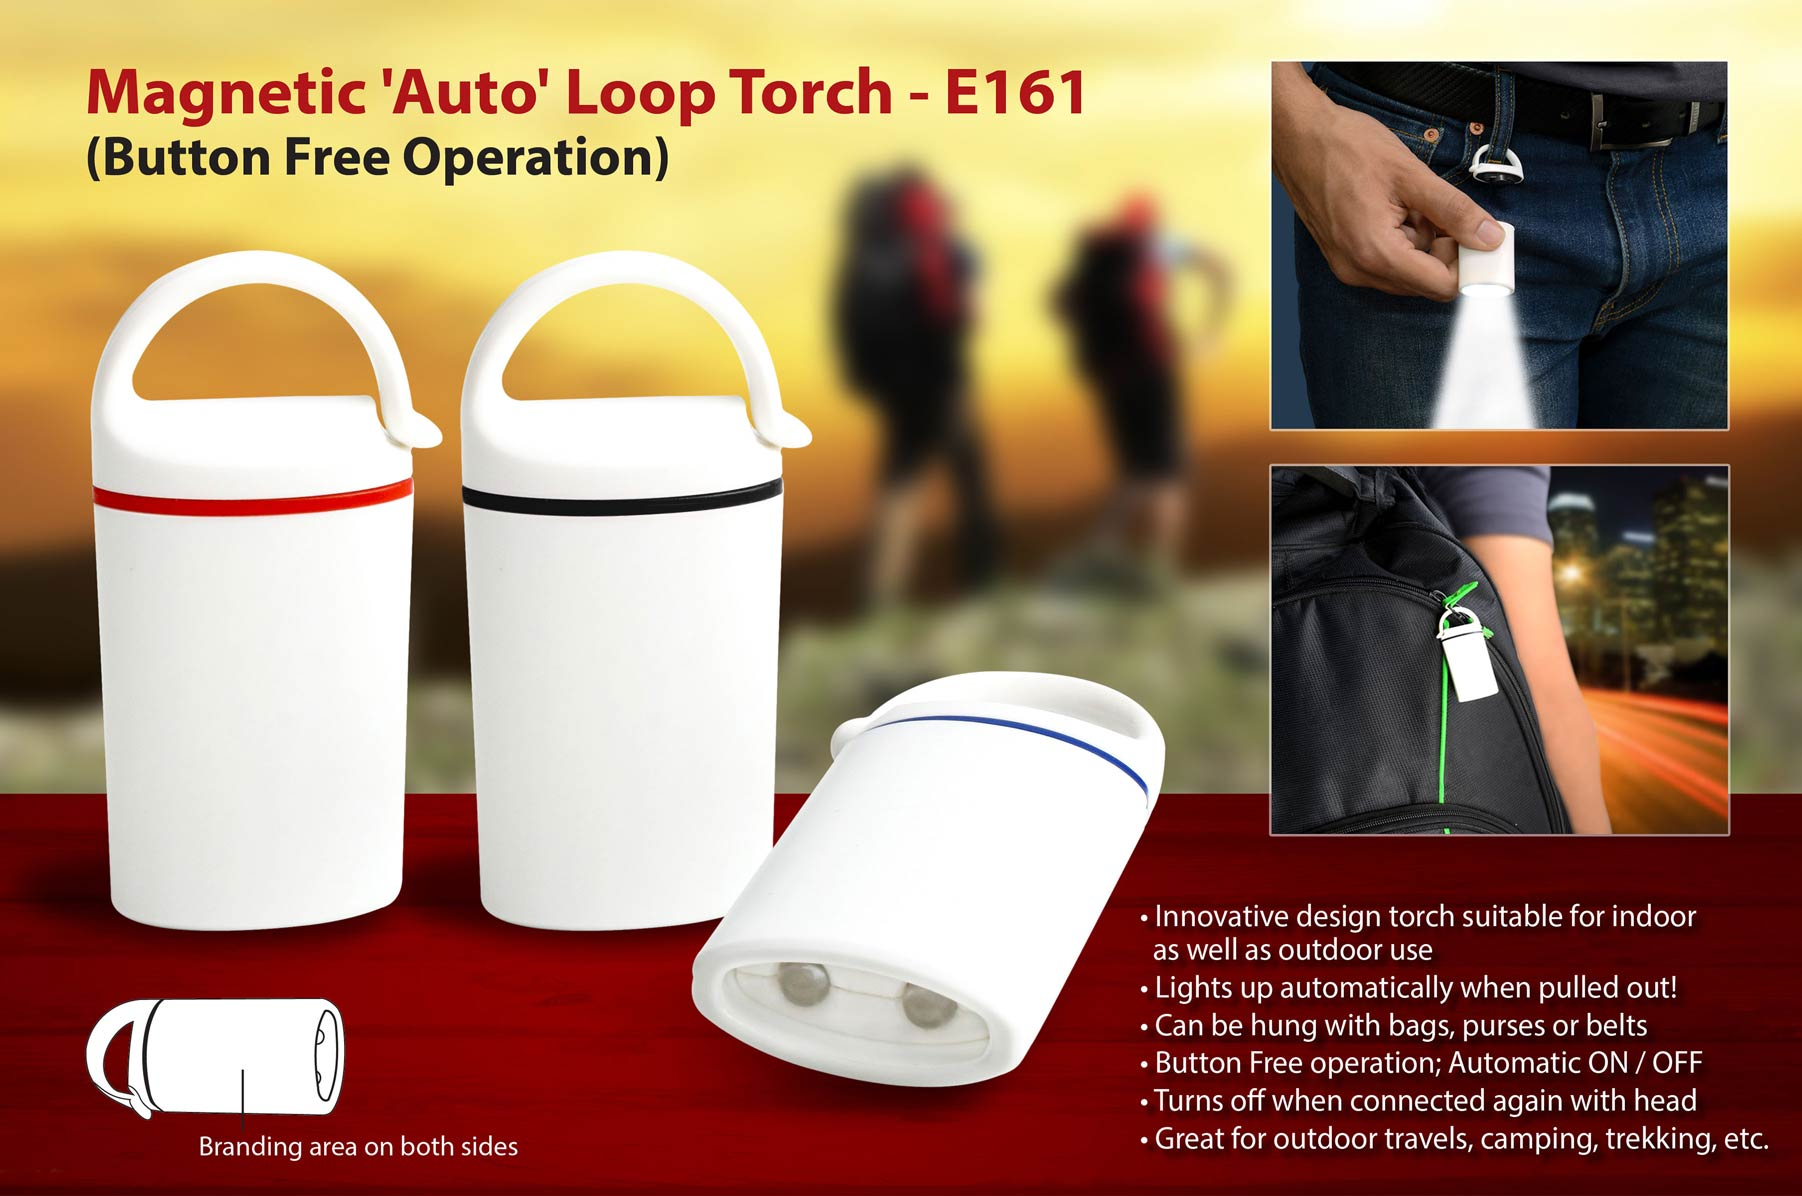 Auto loop torch: Magnetic, button free operation